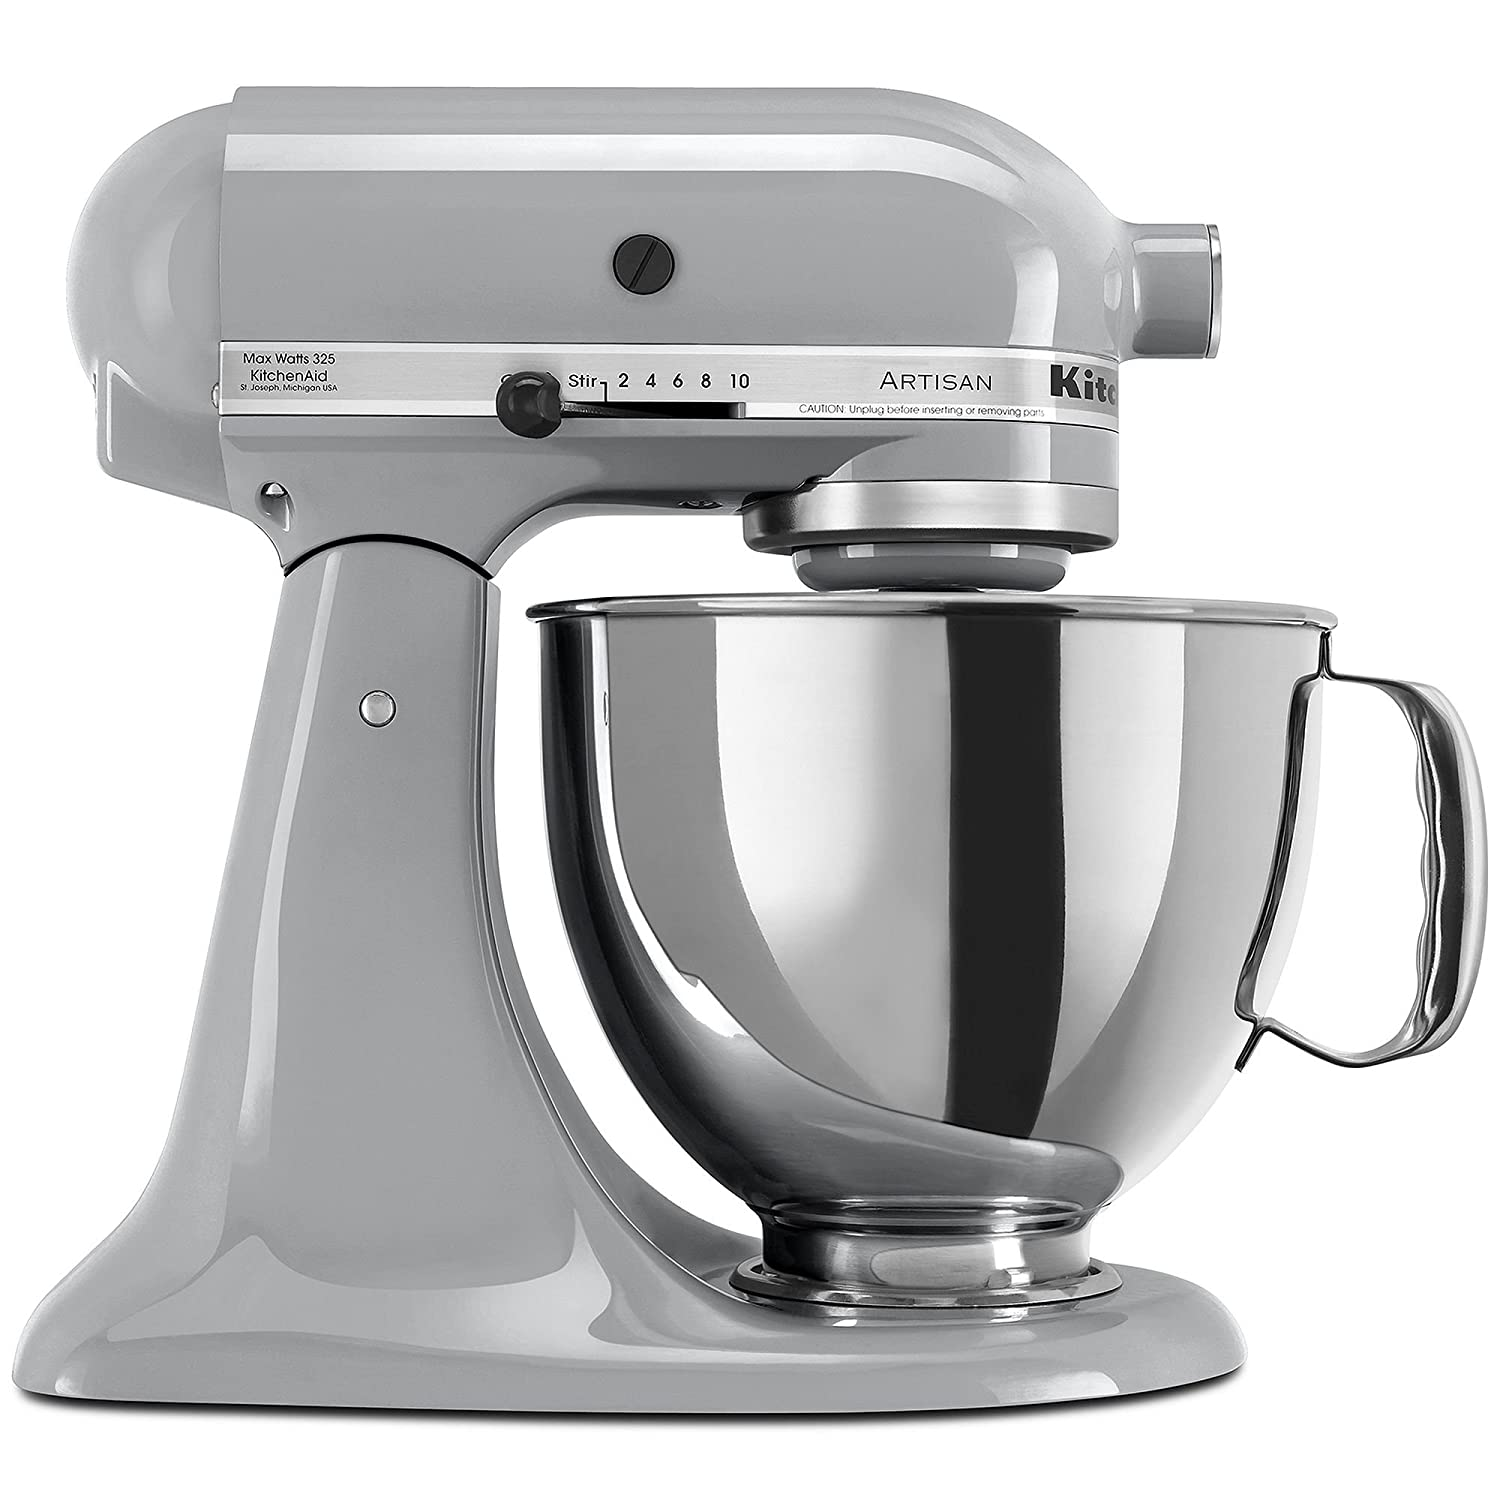 KitchenAid Artisan Series Tilt-Head Stand Mixer (KSM150PSMC) Metallic Chrome - New